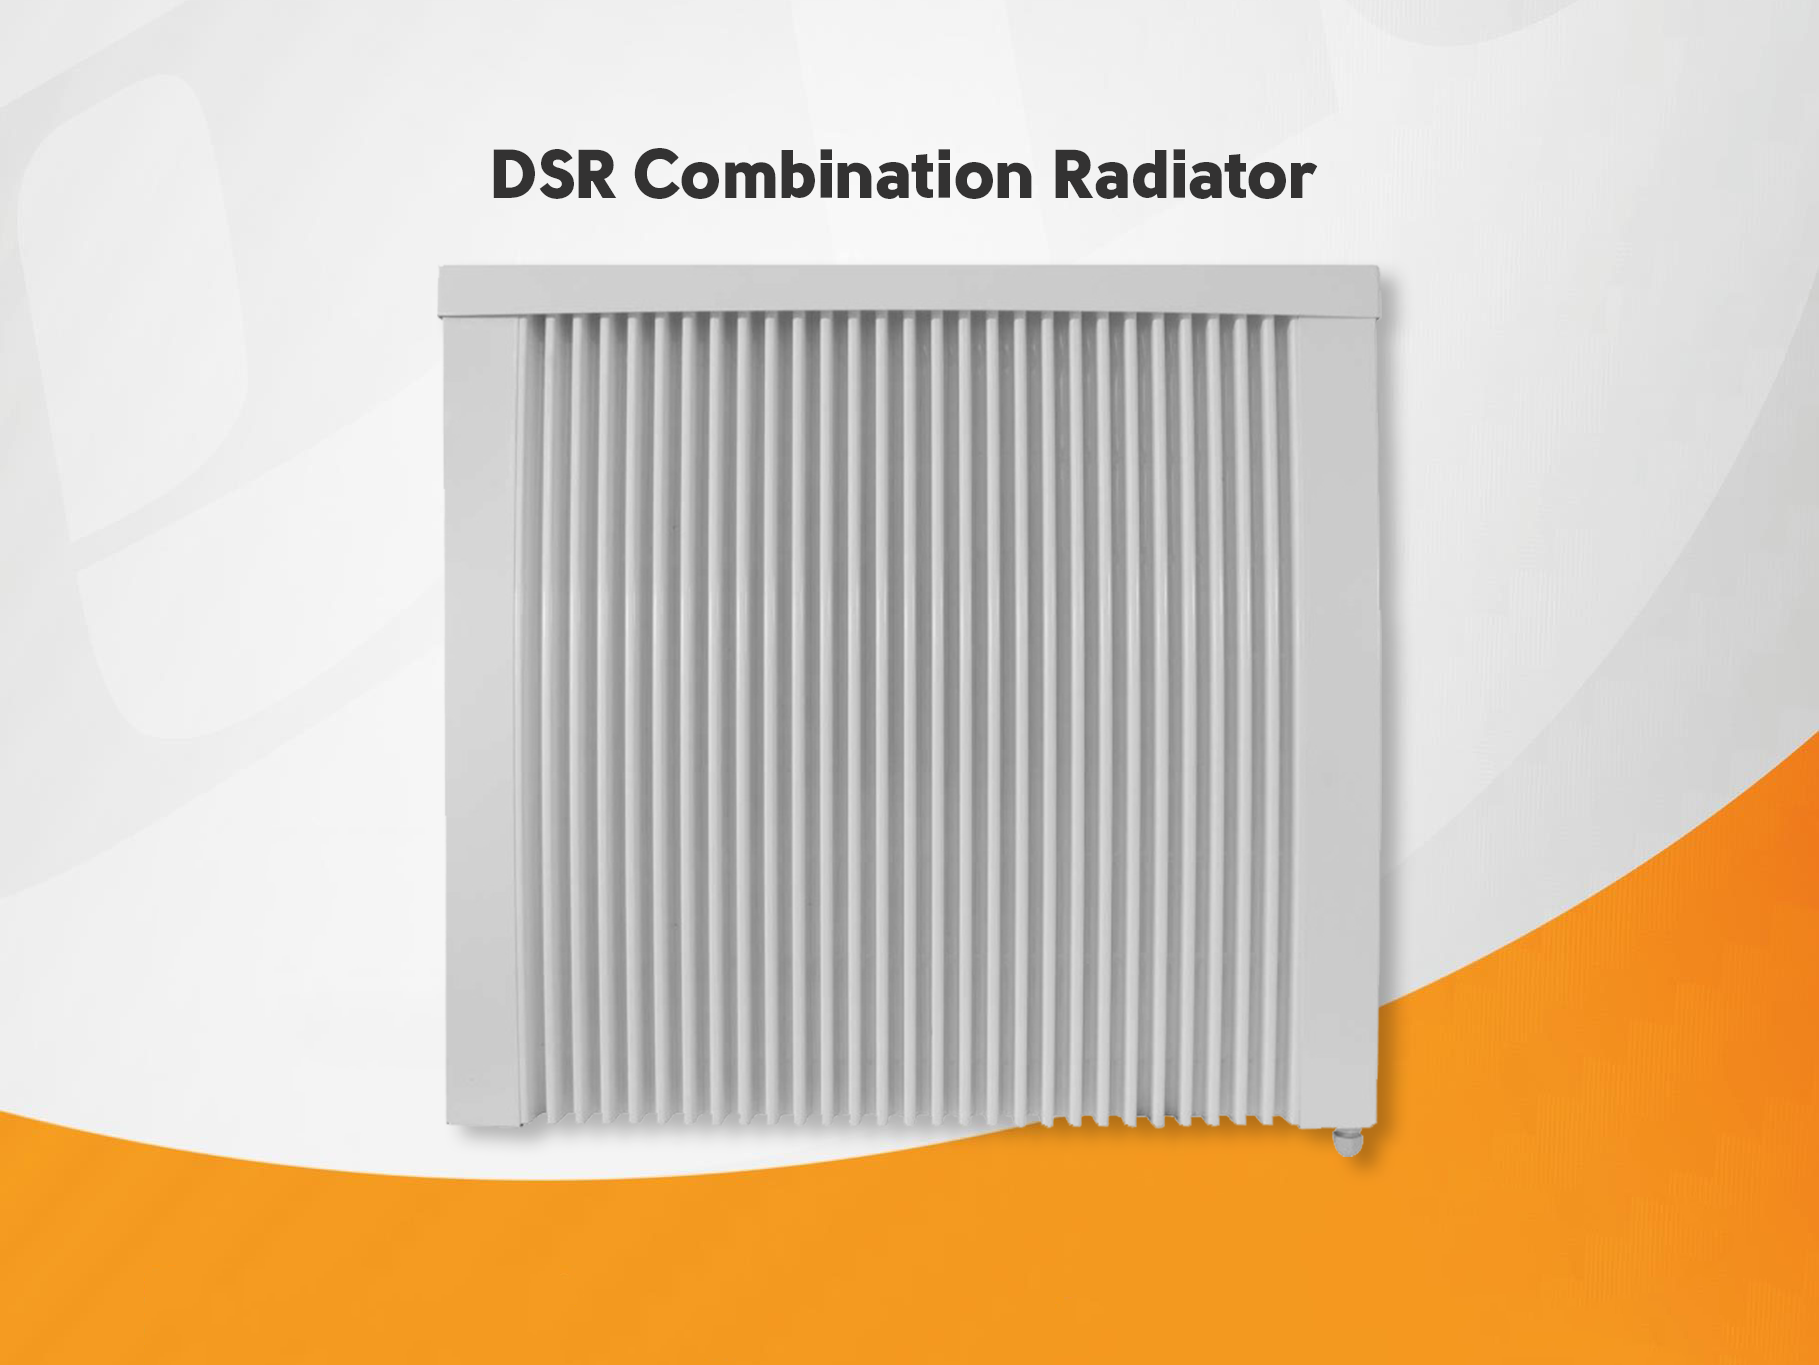 DSR Combination Radiators – The UK's most advanced Electric Radiator